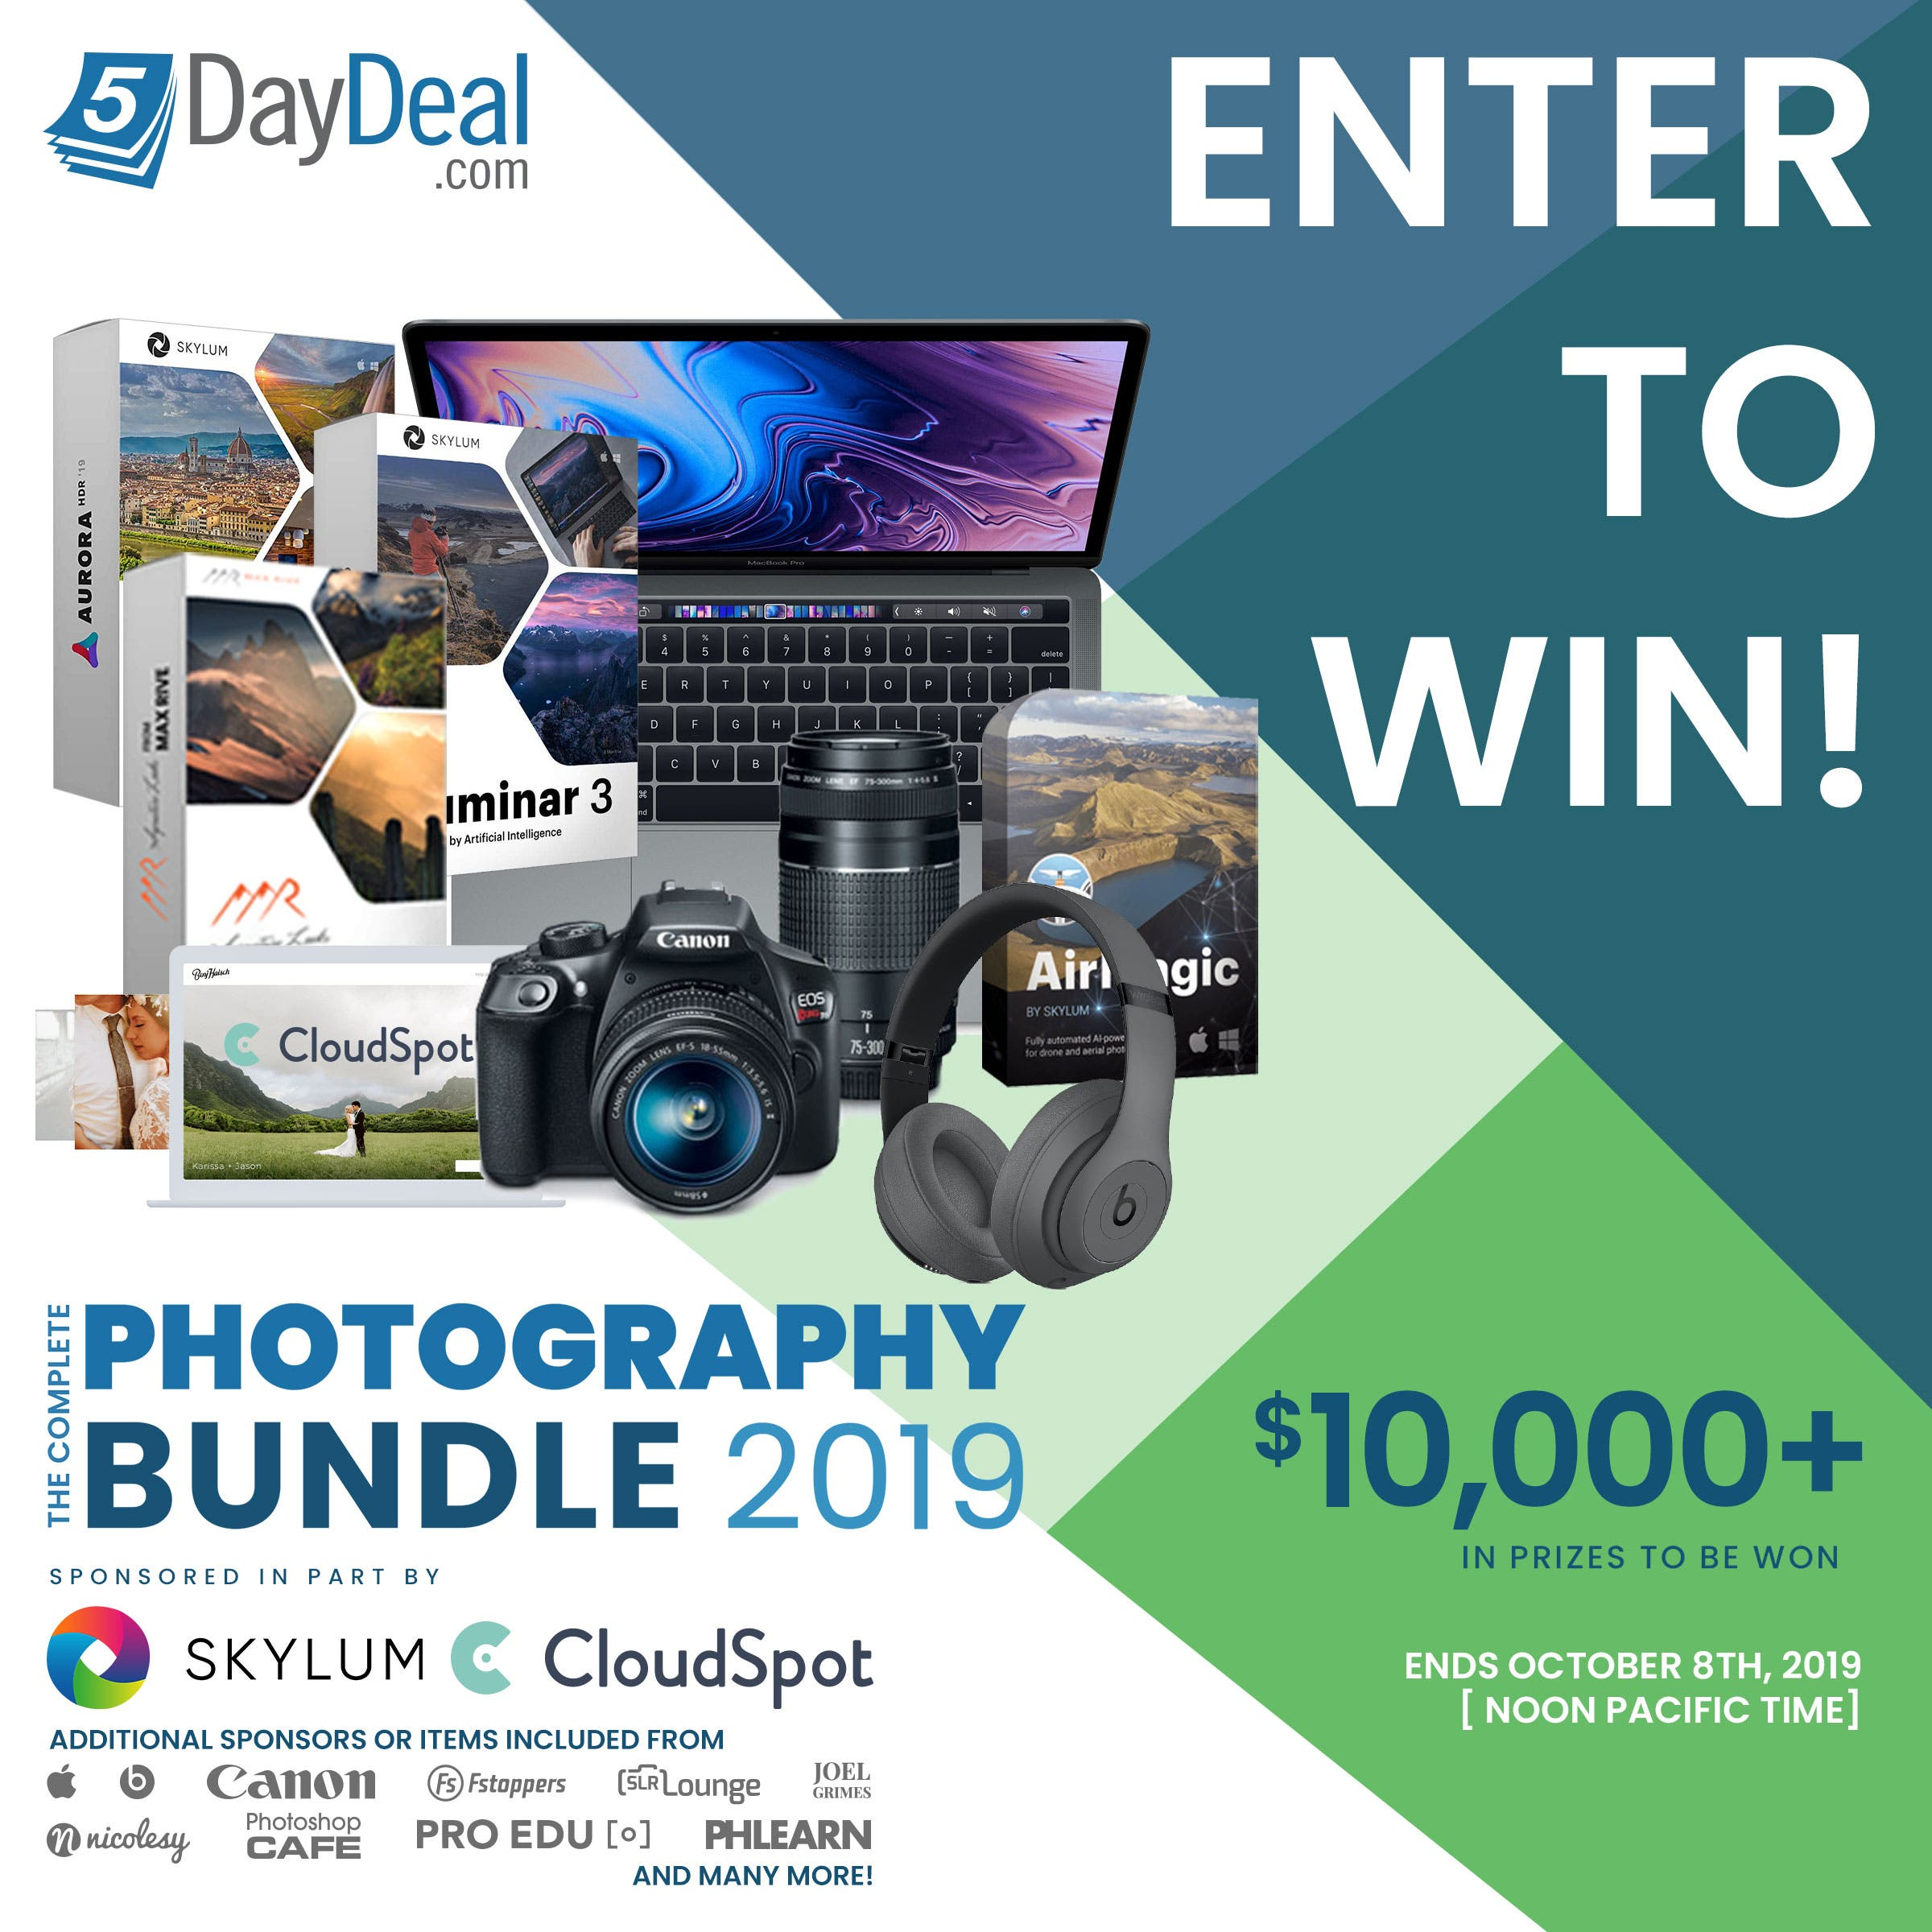 Enter the 5DayDeal $10,000 Giveaway and Buy All the Lenses You Want